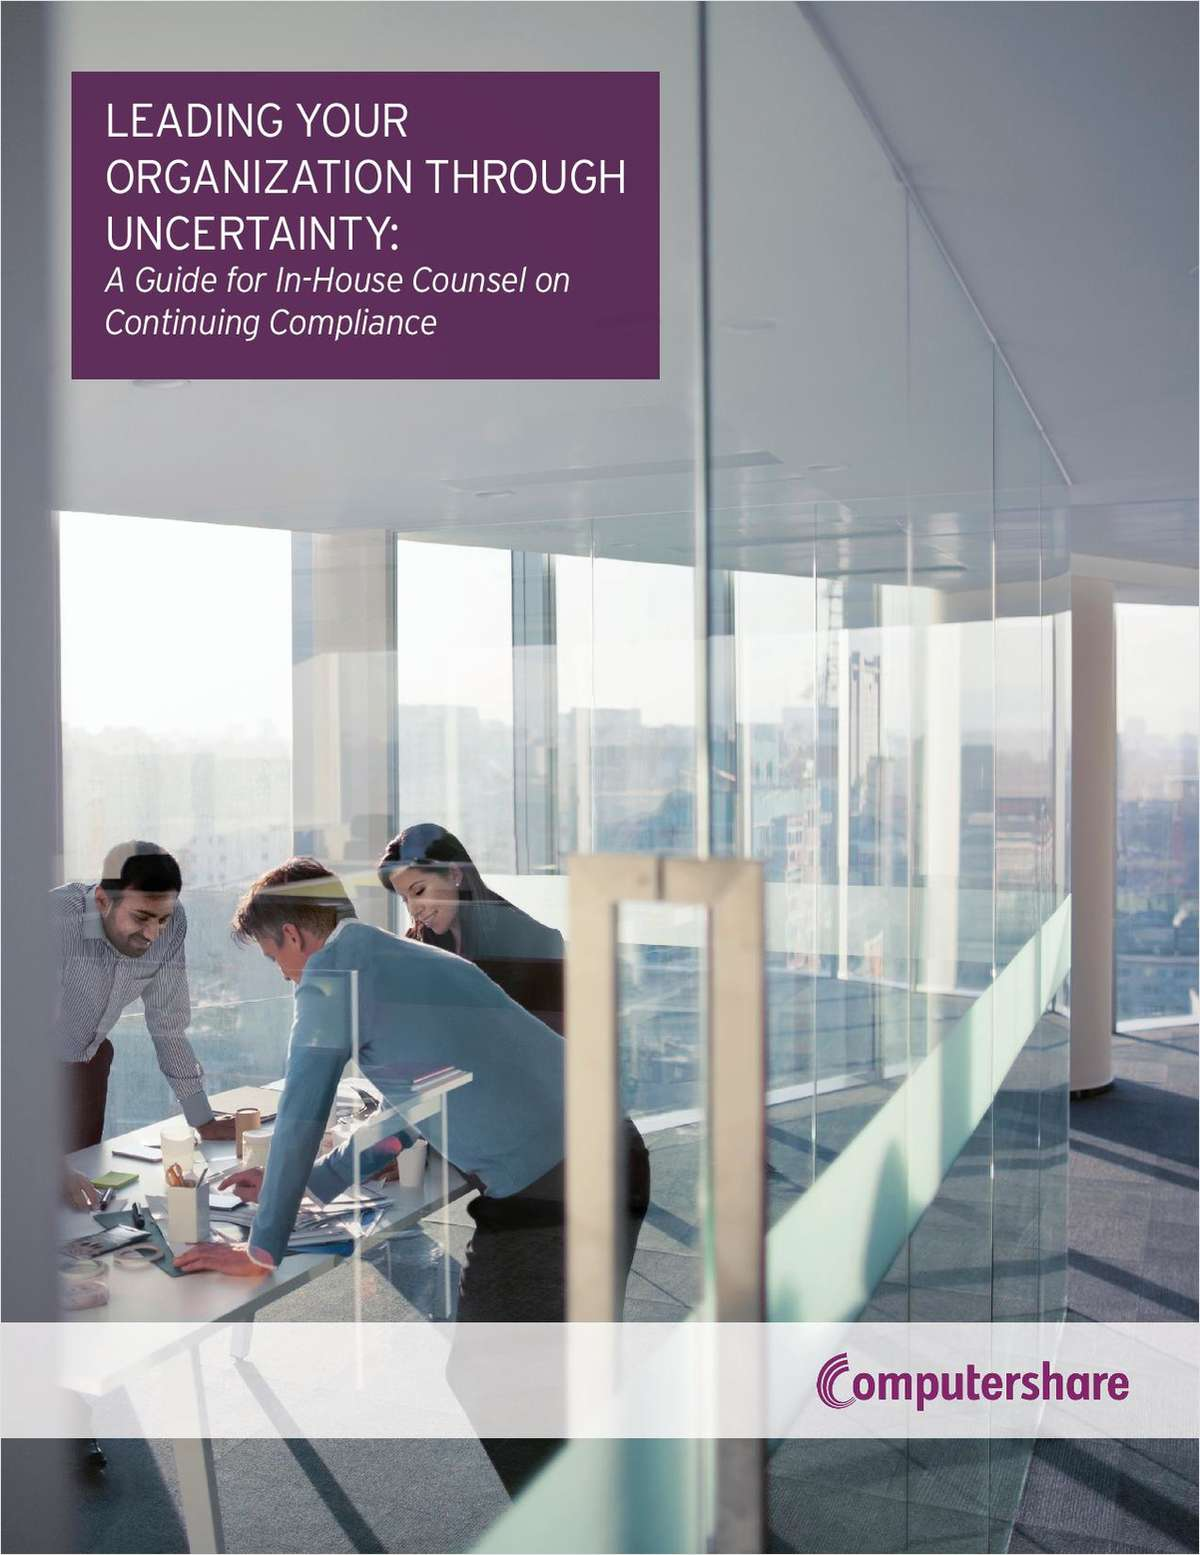 Leading Your Organization Through Uncertainty: A Guide for In-House Counsel on Continuing Compliance